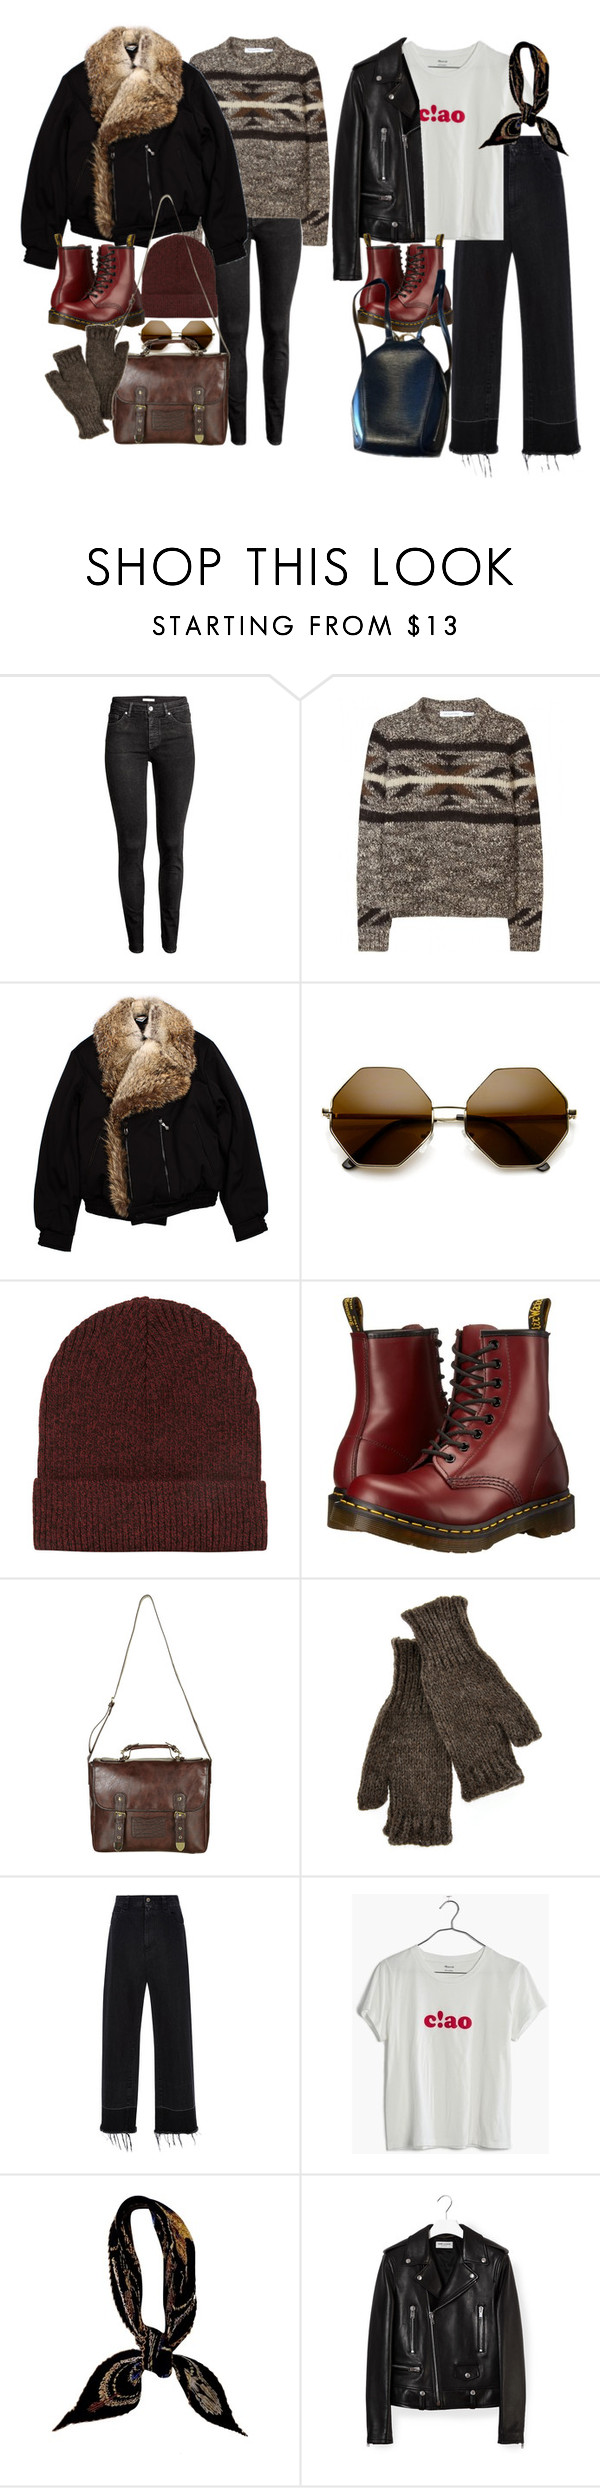 """""""How to style 1460 Smooth in Cherry Red doc martens"""" by nikka-phillips ❤ liked on Polyvore featuring H&M, Étoile Isabel Marant, Bos Bison, ZeroUV, Topshop, Dr. Martens, Inverni, Rachel Comey, Madewell and Hermès"""